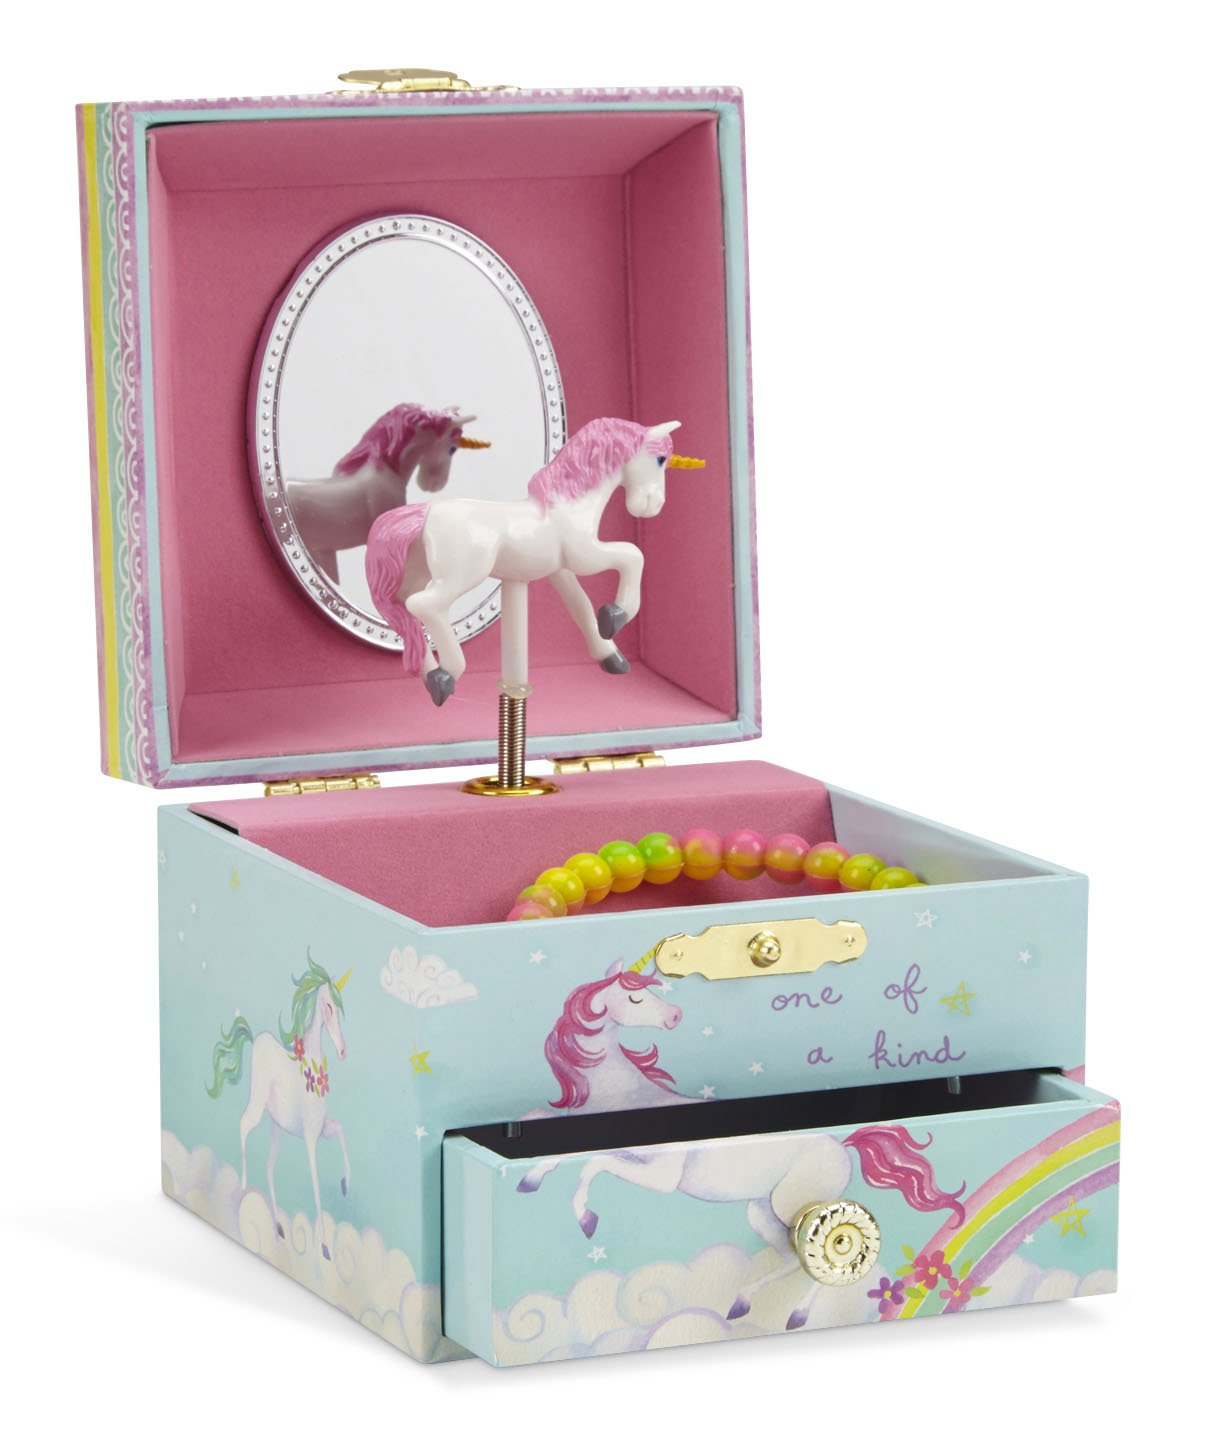 Jewelkeeper Musical Jewelry Box, Unicorn Rainbow Design with Pullout Drawer, The Unicorn Tune by Jewelkeeper